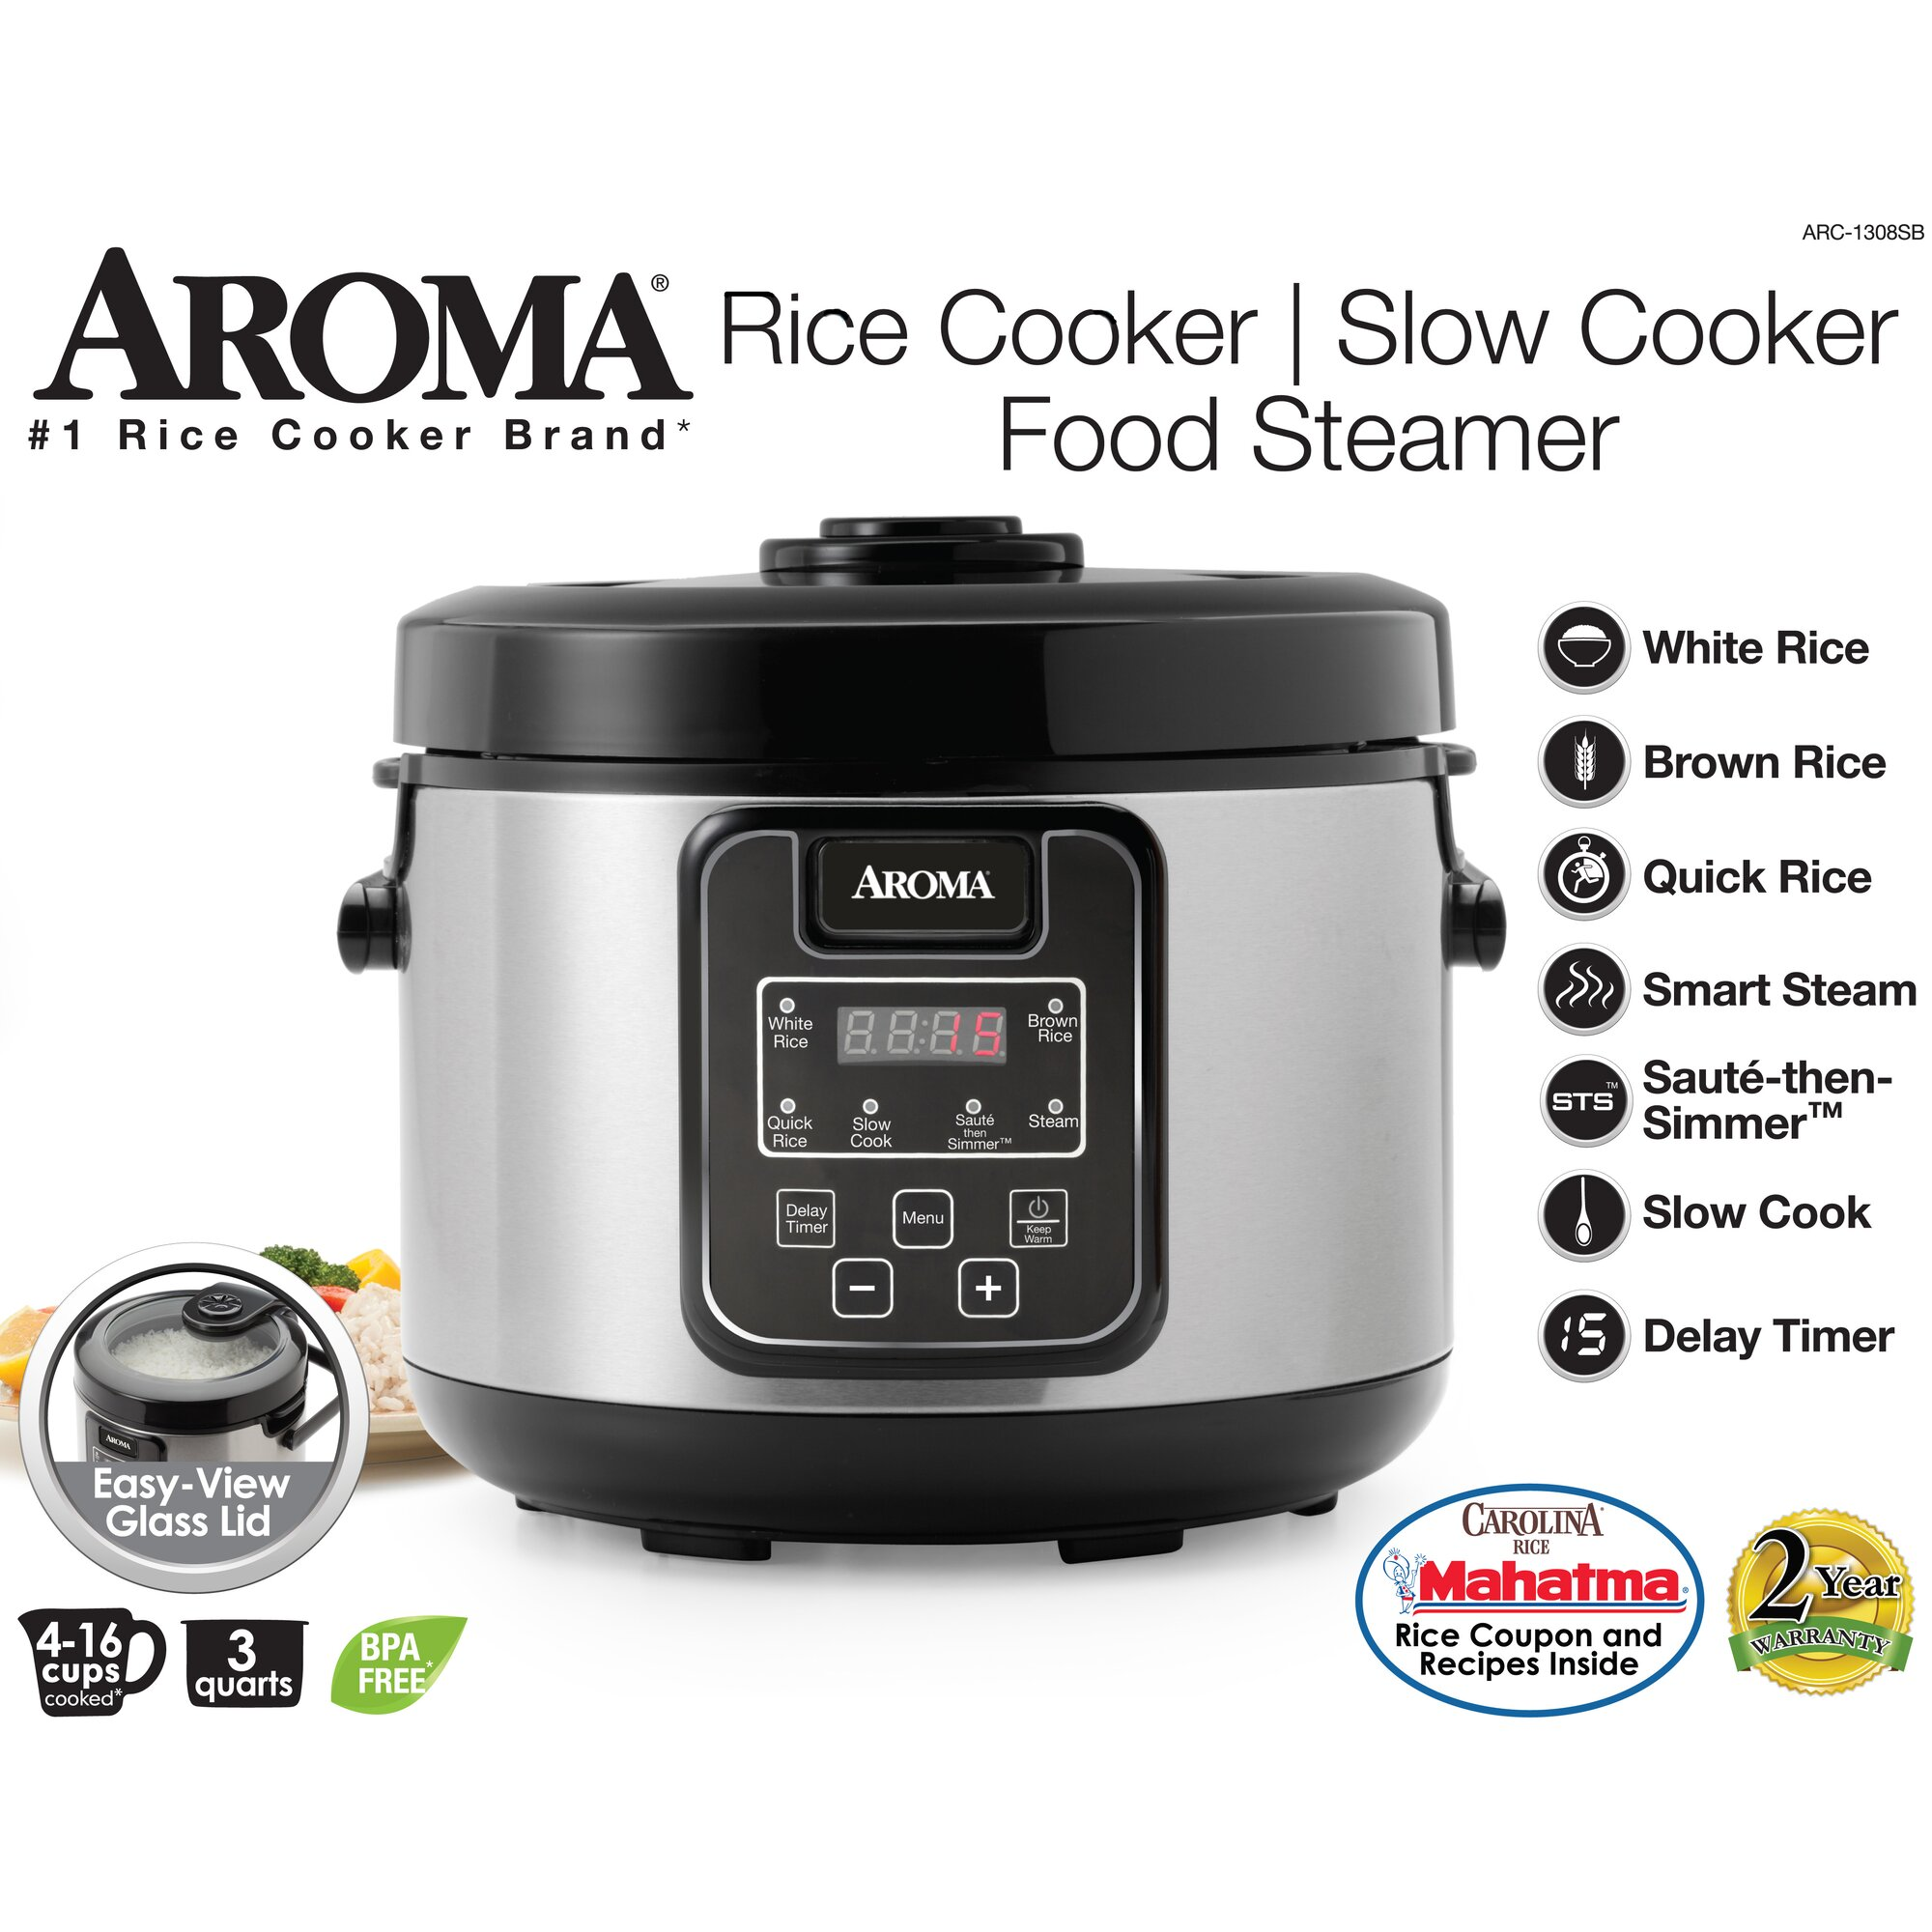 Aroma 16-Cup Slow Cooker, Food Steamer and Rice Cooker